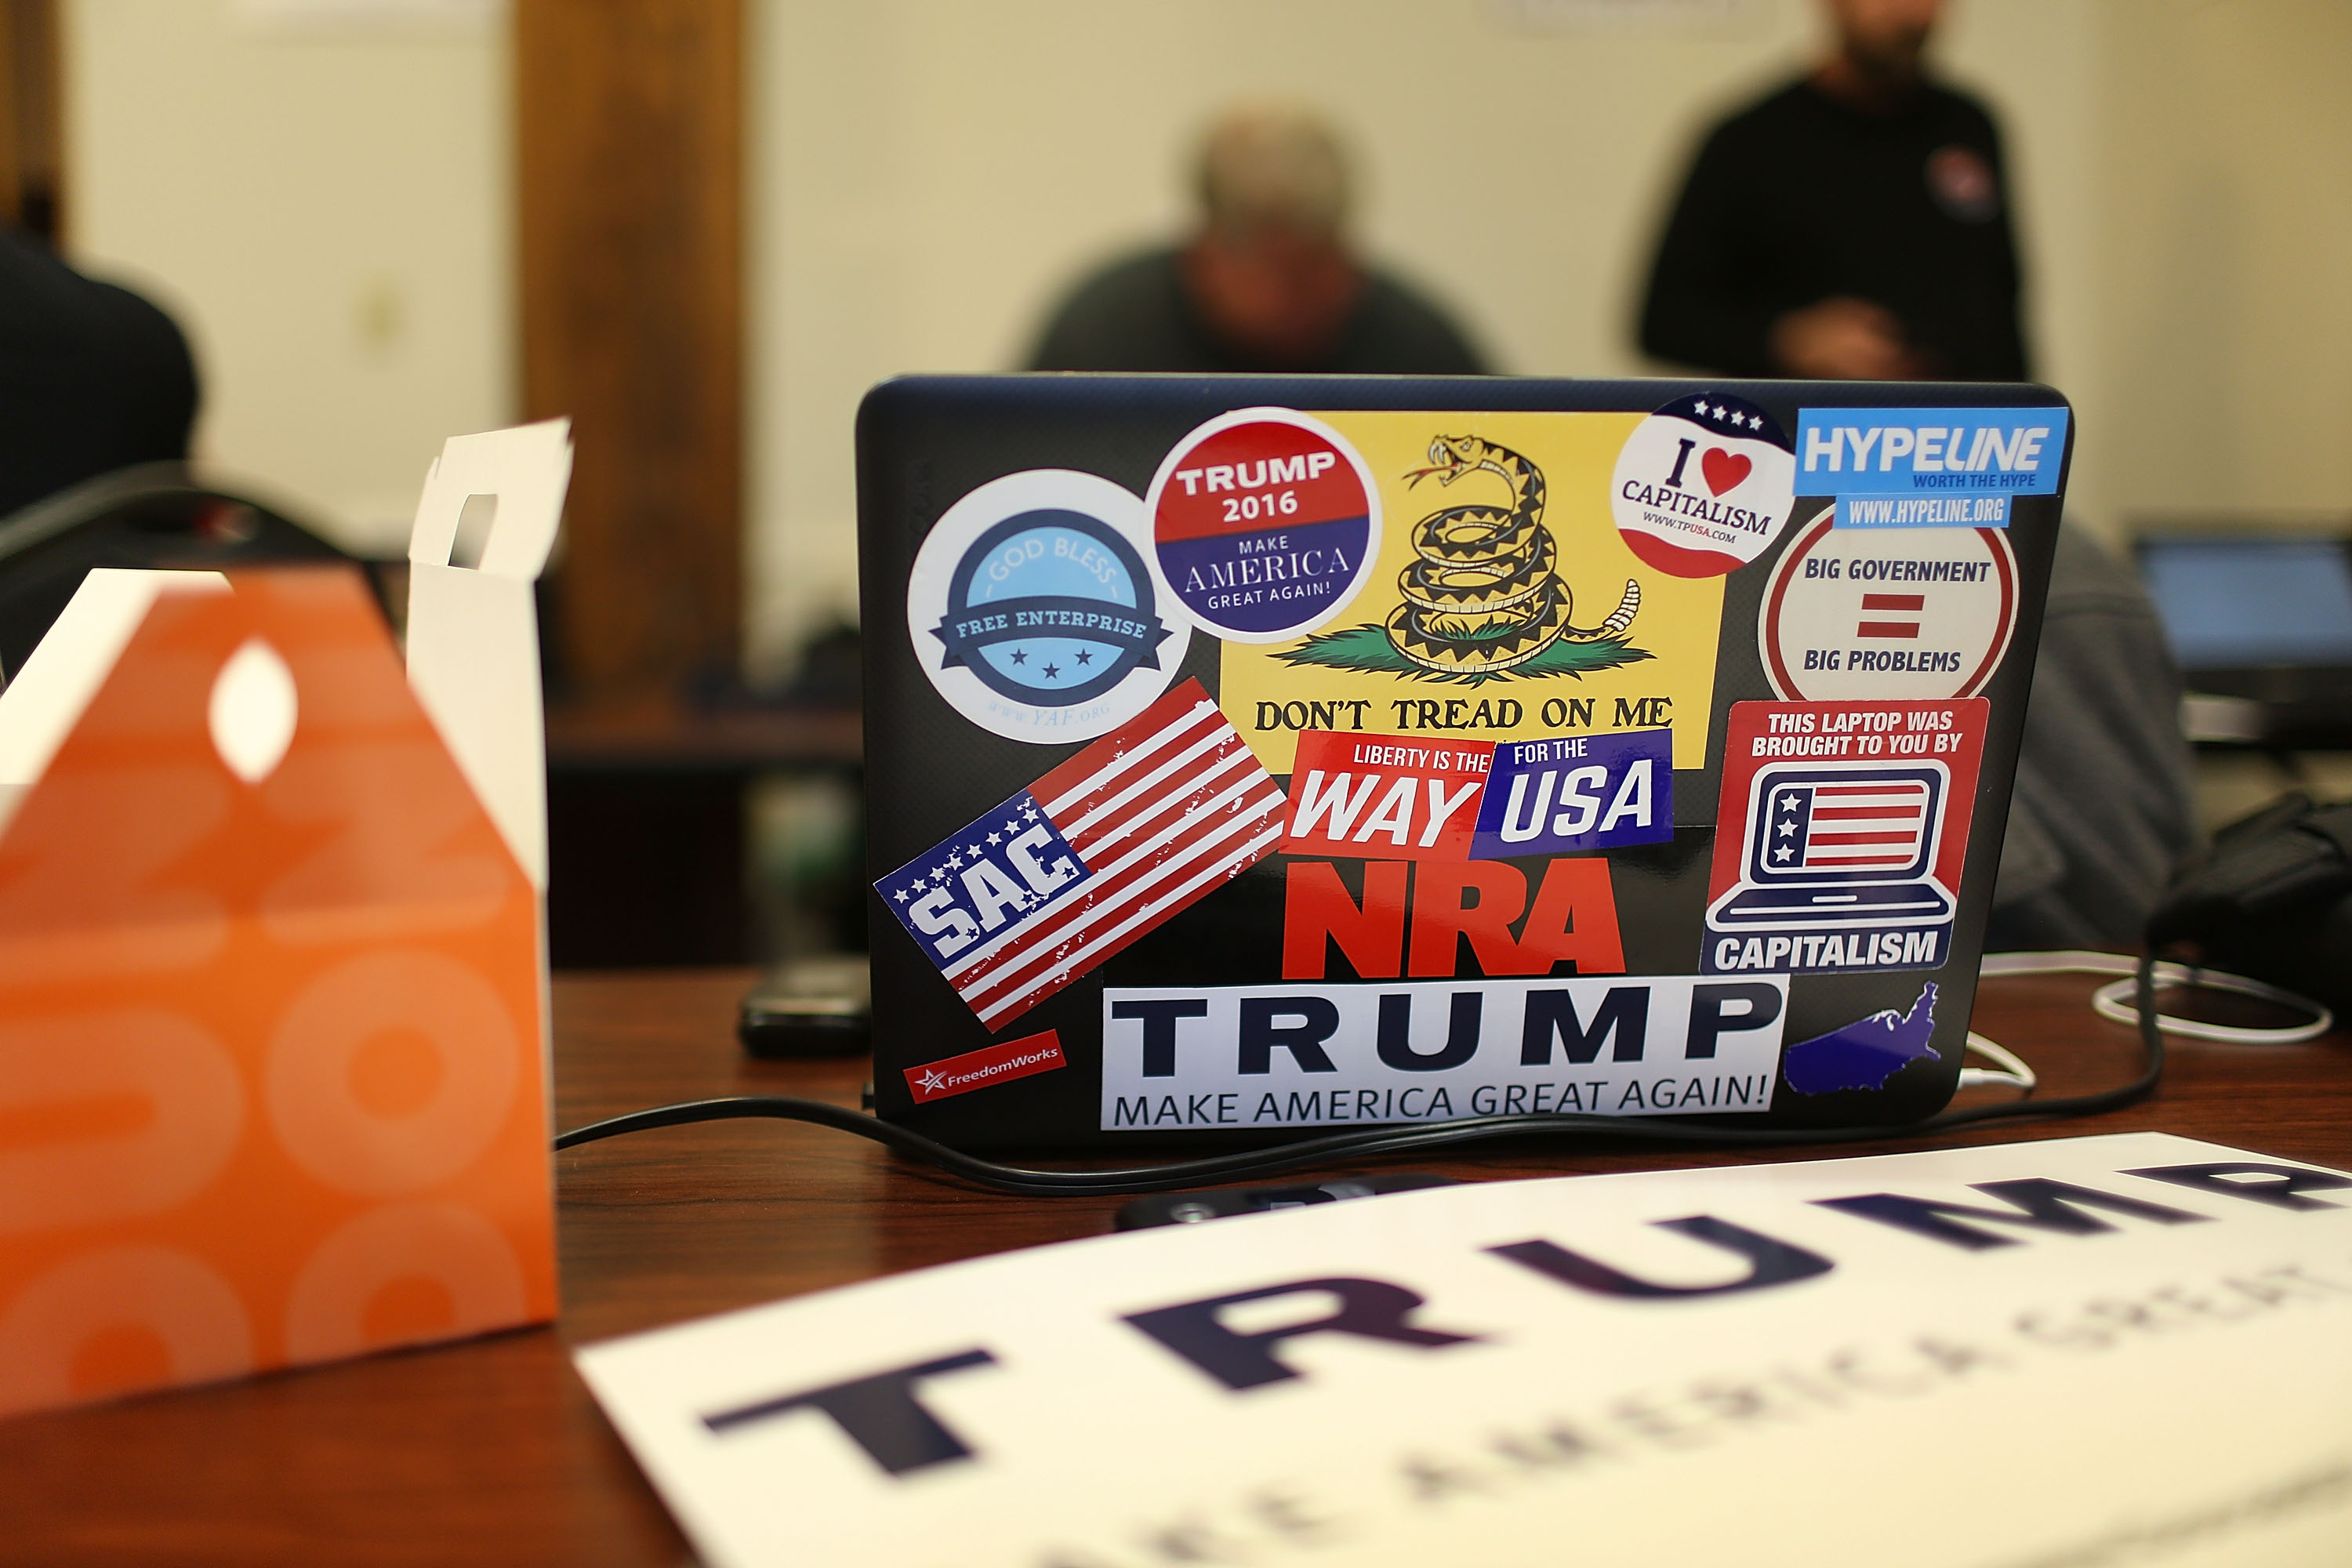 A laptop freshly prepared for tweeting for Trump.